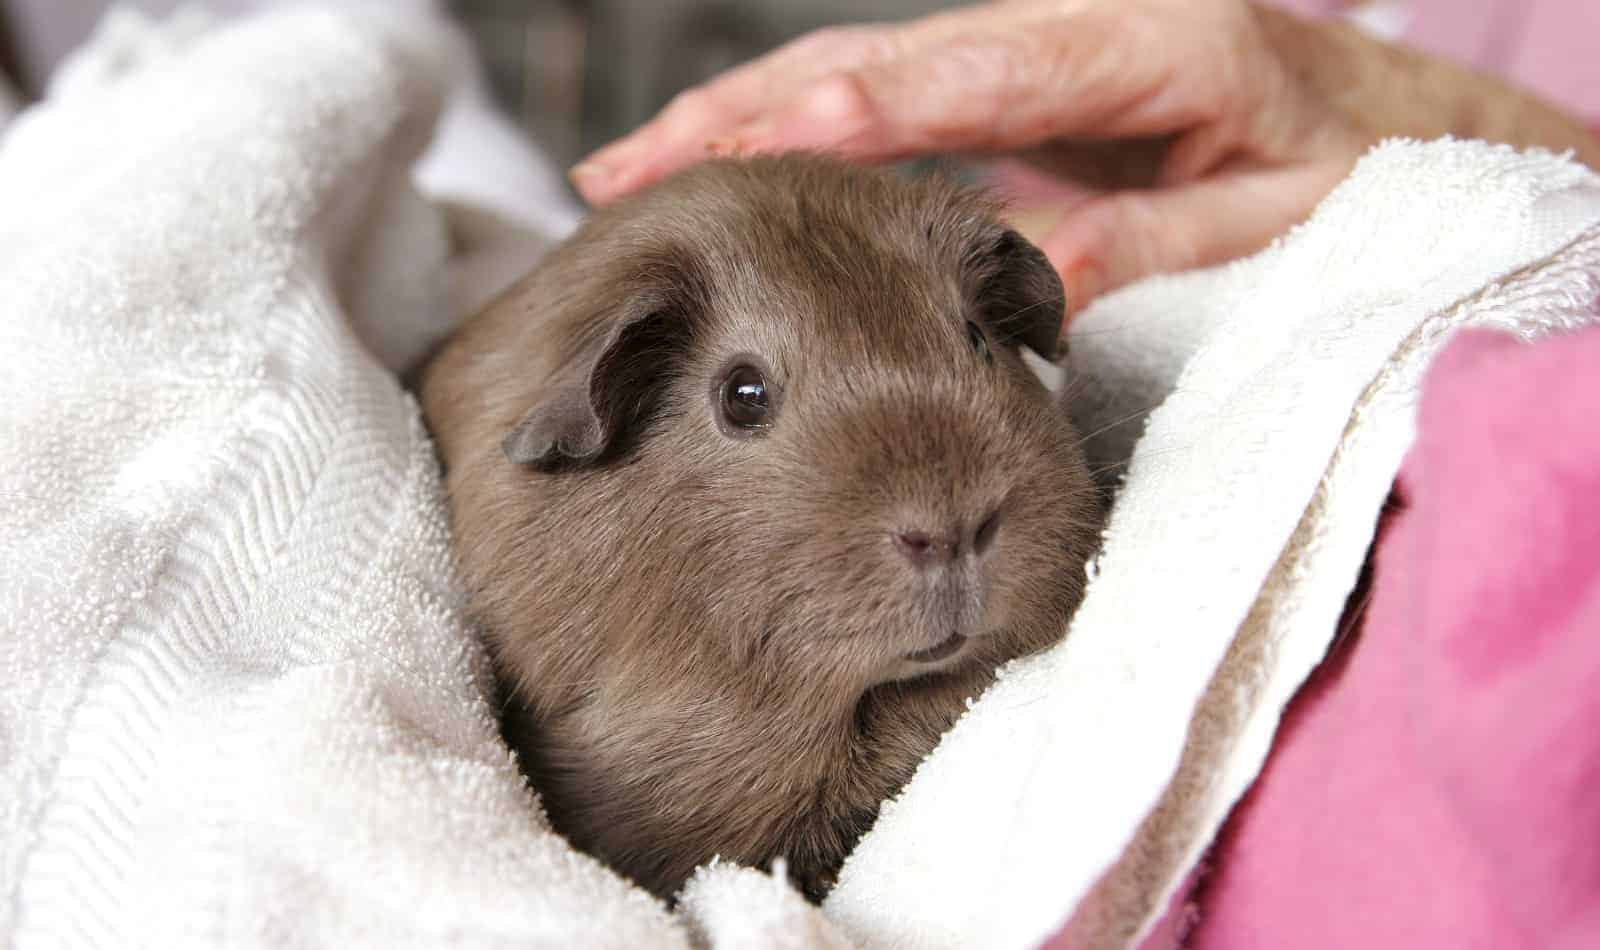 Looking for tips on how to help your guinea pig live longer? Check out our guide to getting more time with your beloved cavy!